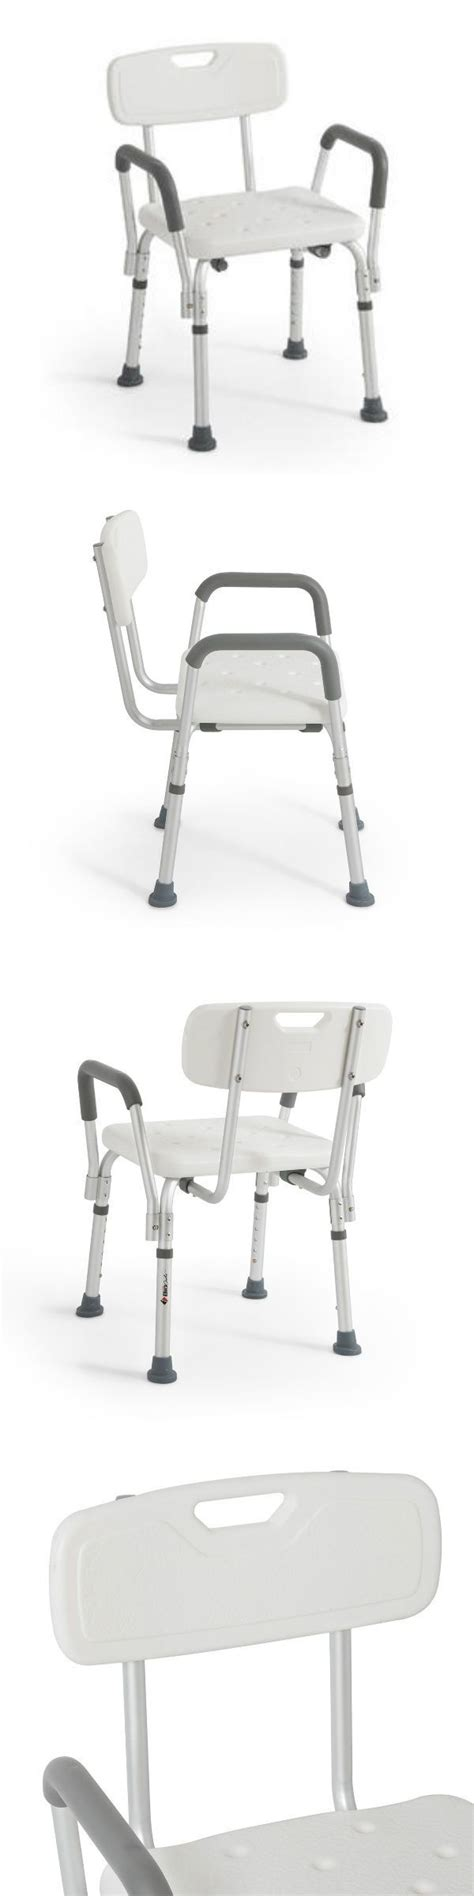 shower benches for elderly the 25 best ideas about shower chairs for elderly on